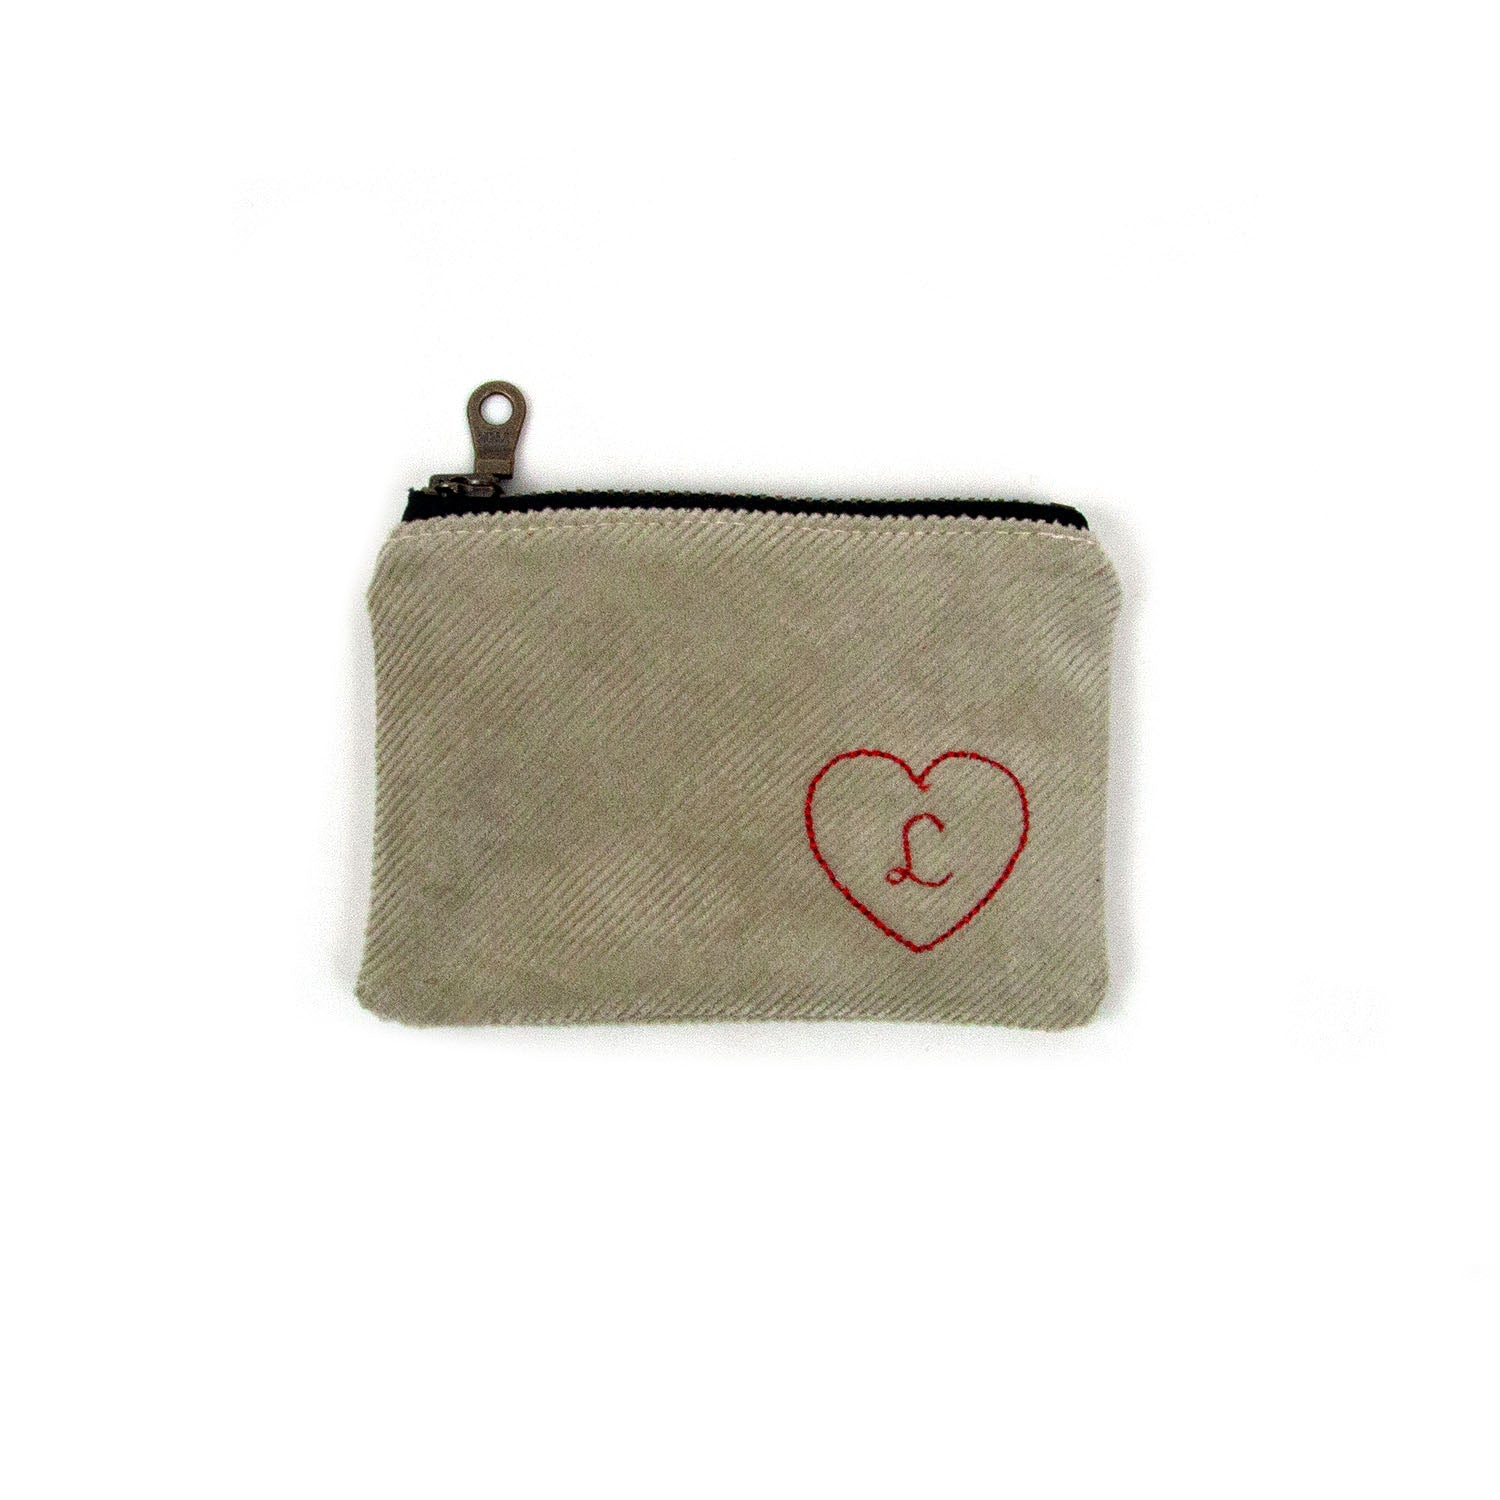 Personalized Coin Purse - Beige